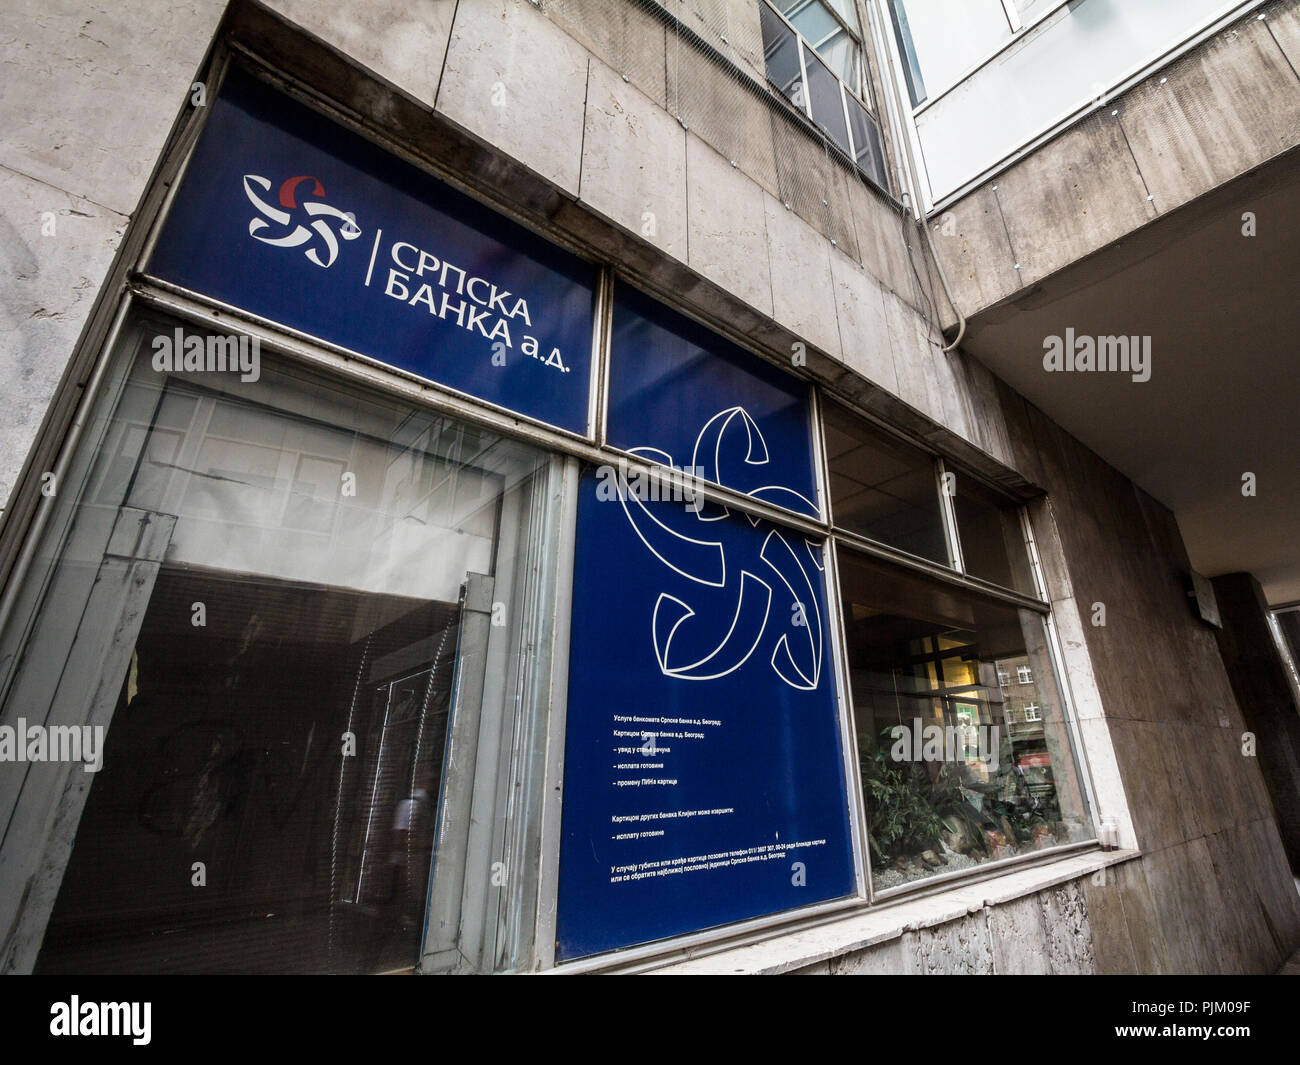 BELGRADE, SERBIA - SEPTEMBER 5, 2018:  Srpska Banka logo on their main office for downtown Belgrade. Also known as Serbian Bank, it is one of main Ser - Stock Image